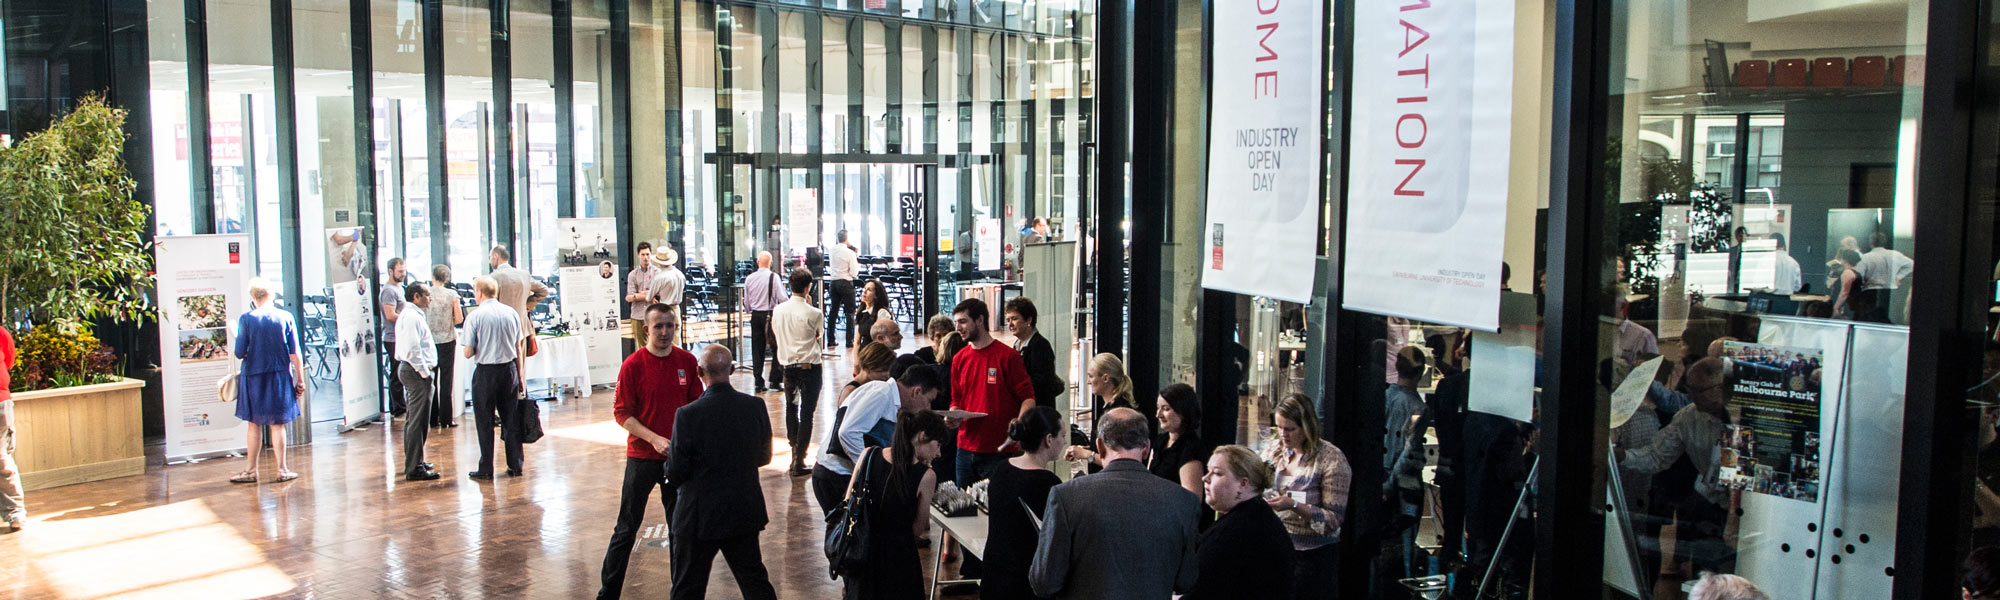 Swinburne Industry Open Day 2014